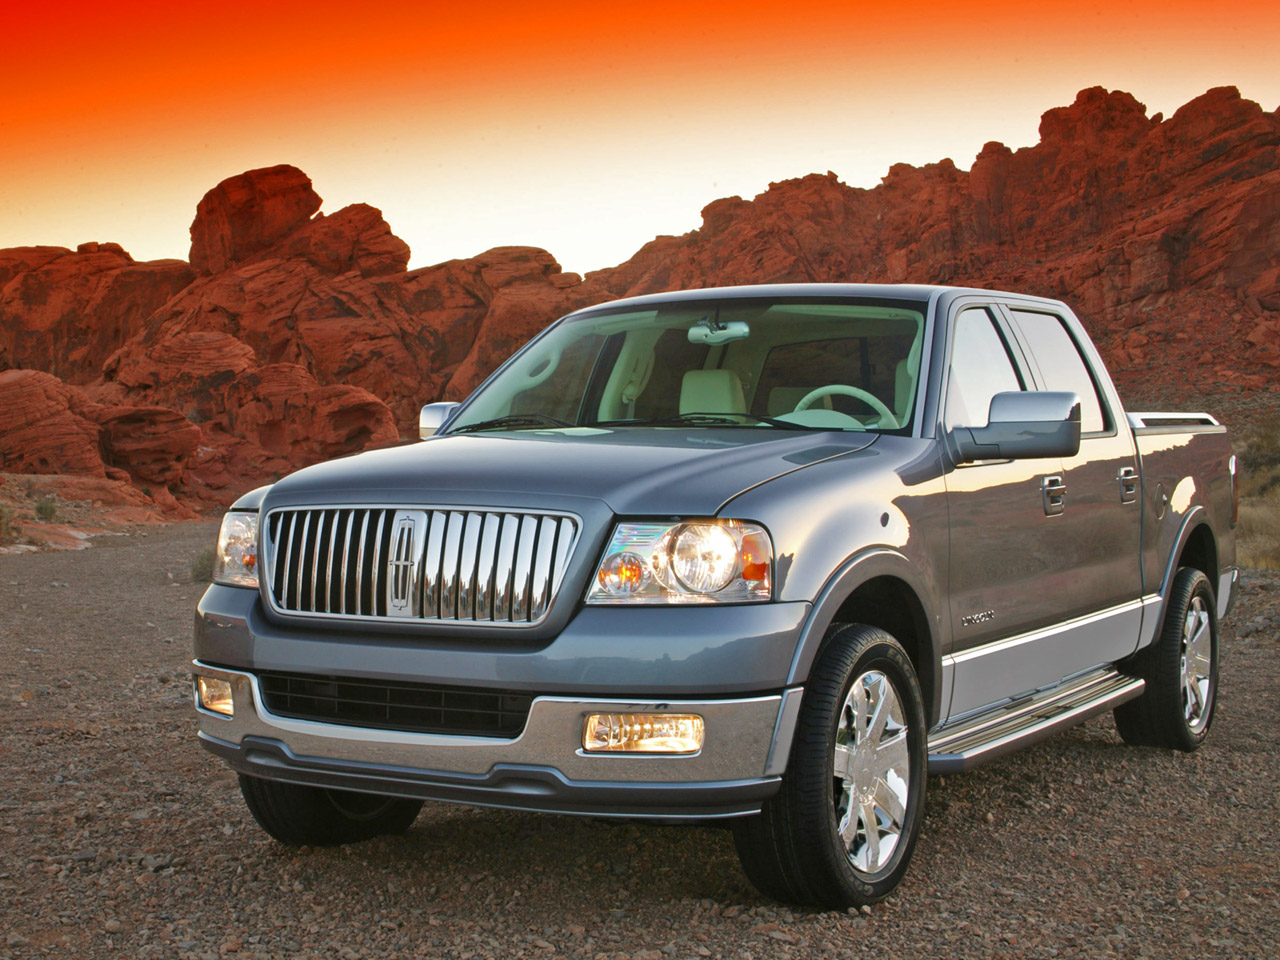 Lincoln Mark LT #17